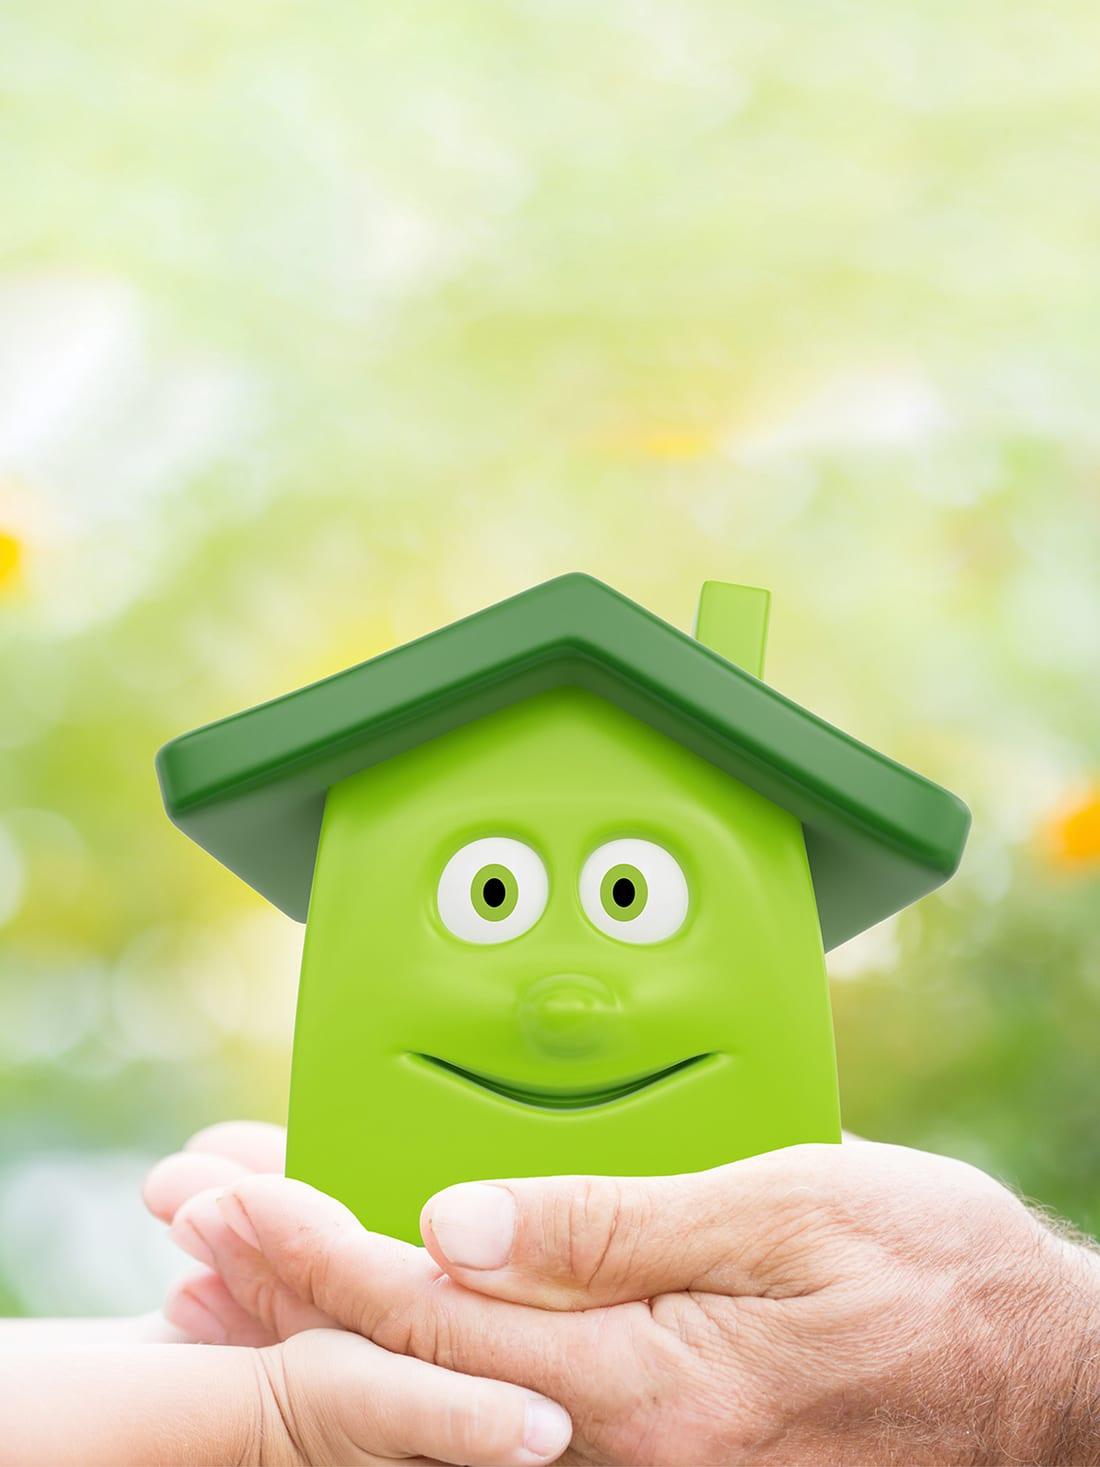 Family holding eco cartoon house in hands against green spring background. Environment protection concept